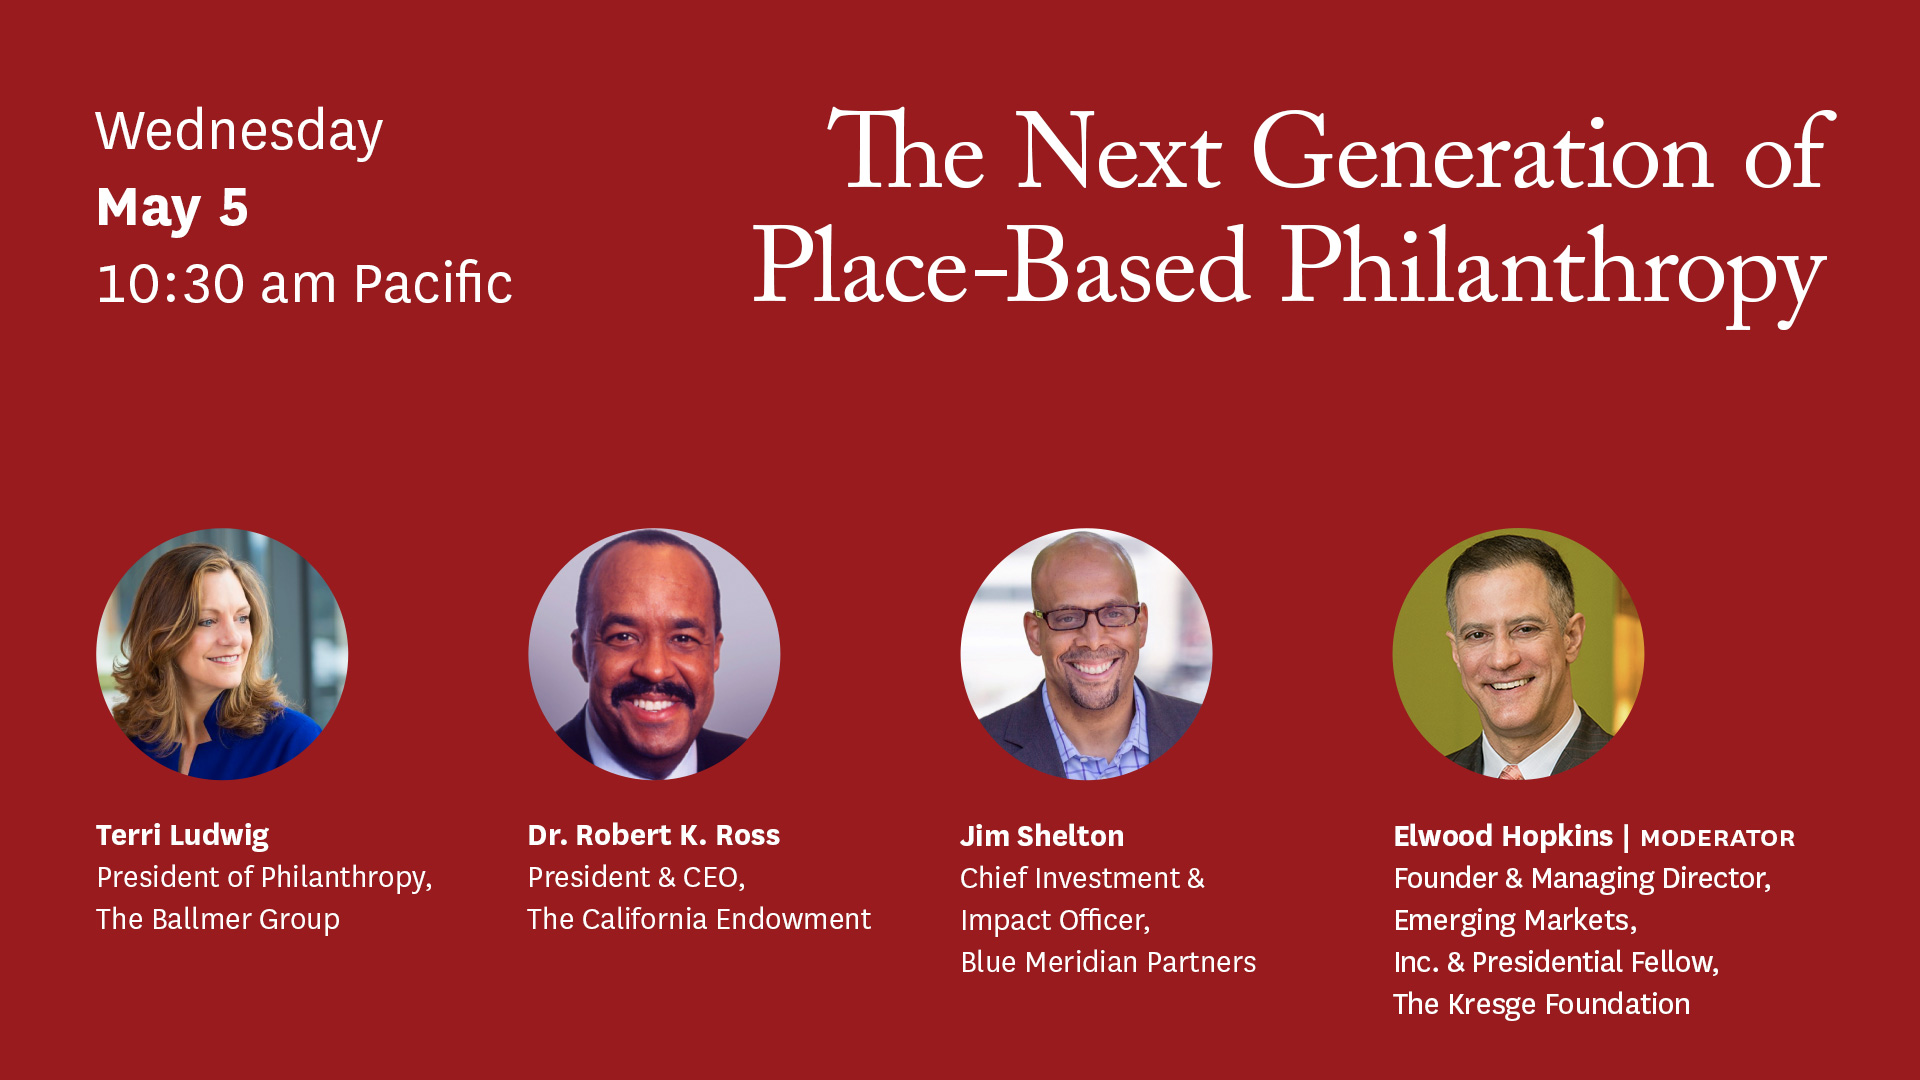 The Next Generation of Place-Based Philanthropy